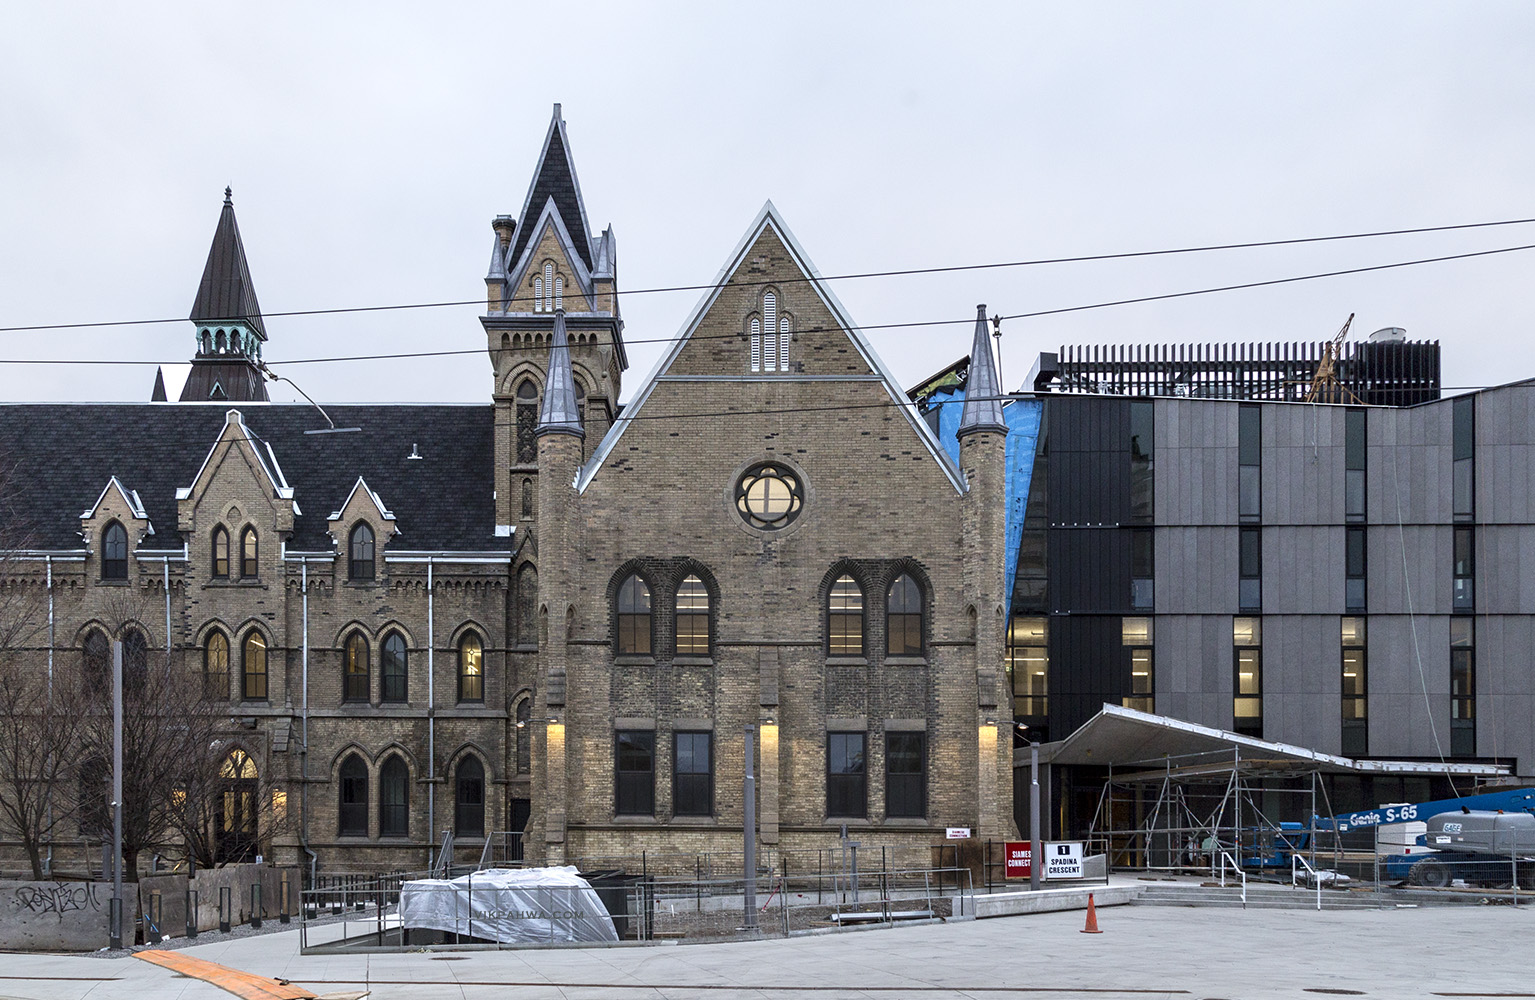 20170328. One Spadina is just about ready for Faculty and Staff